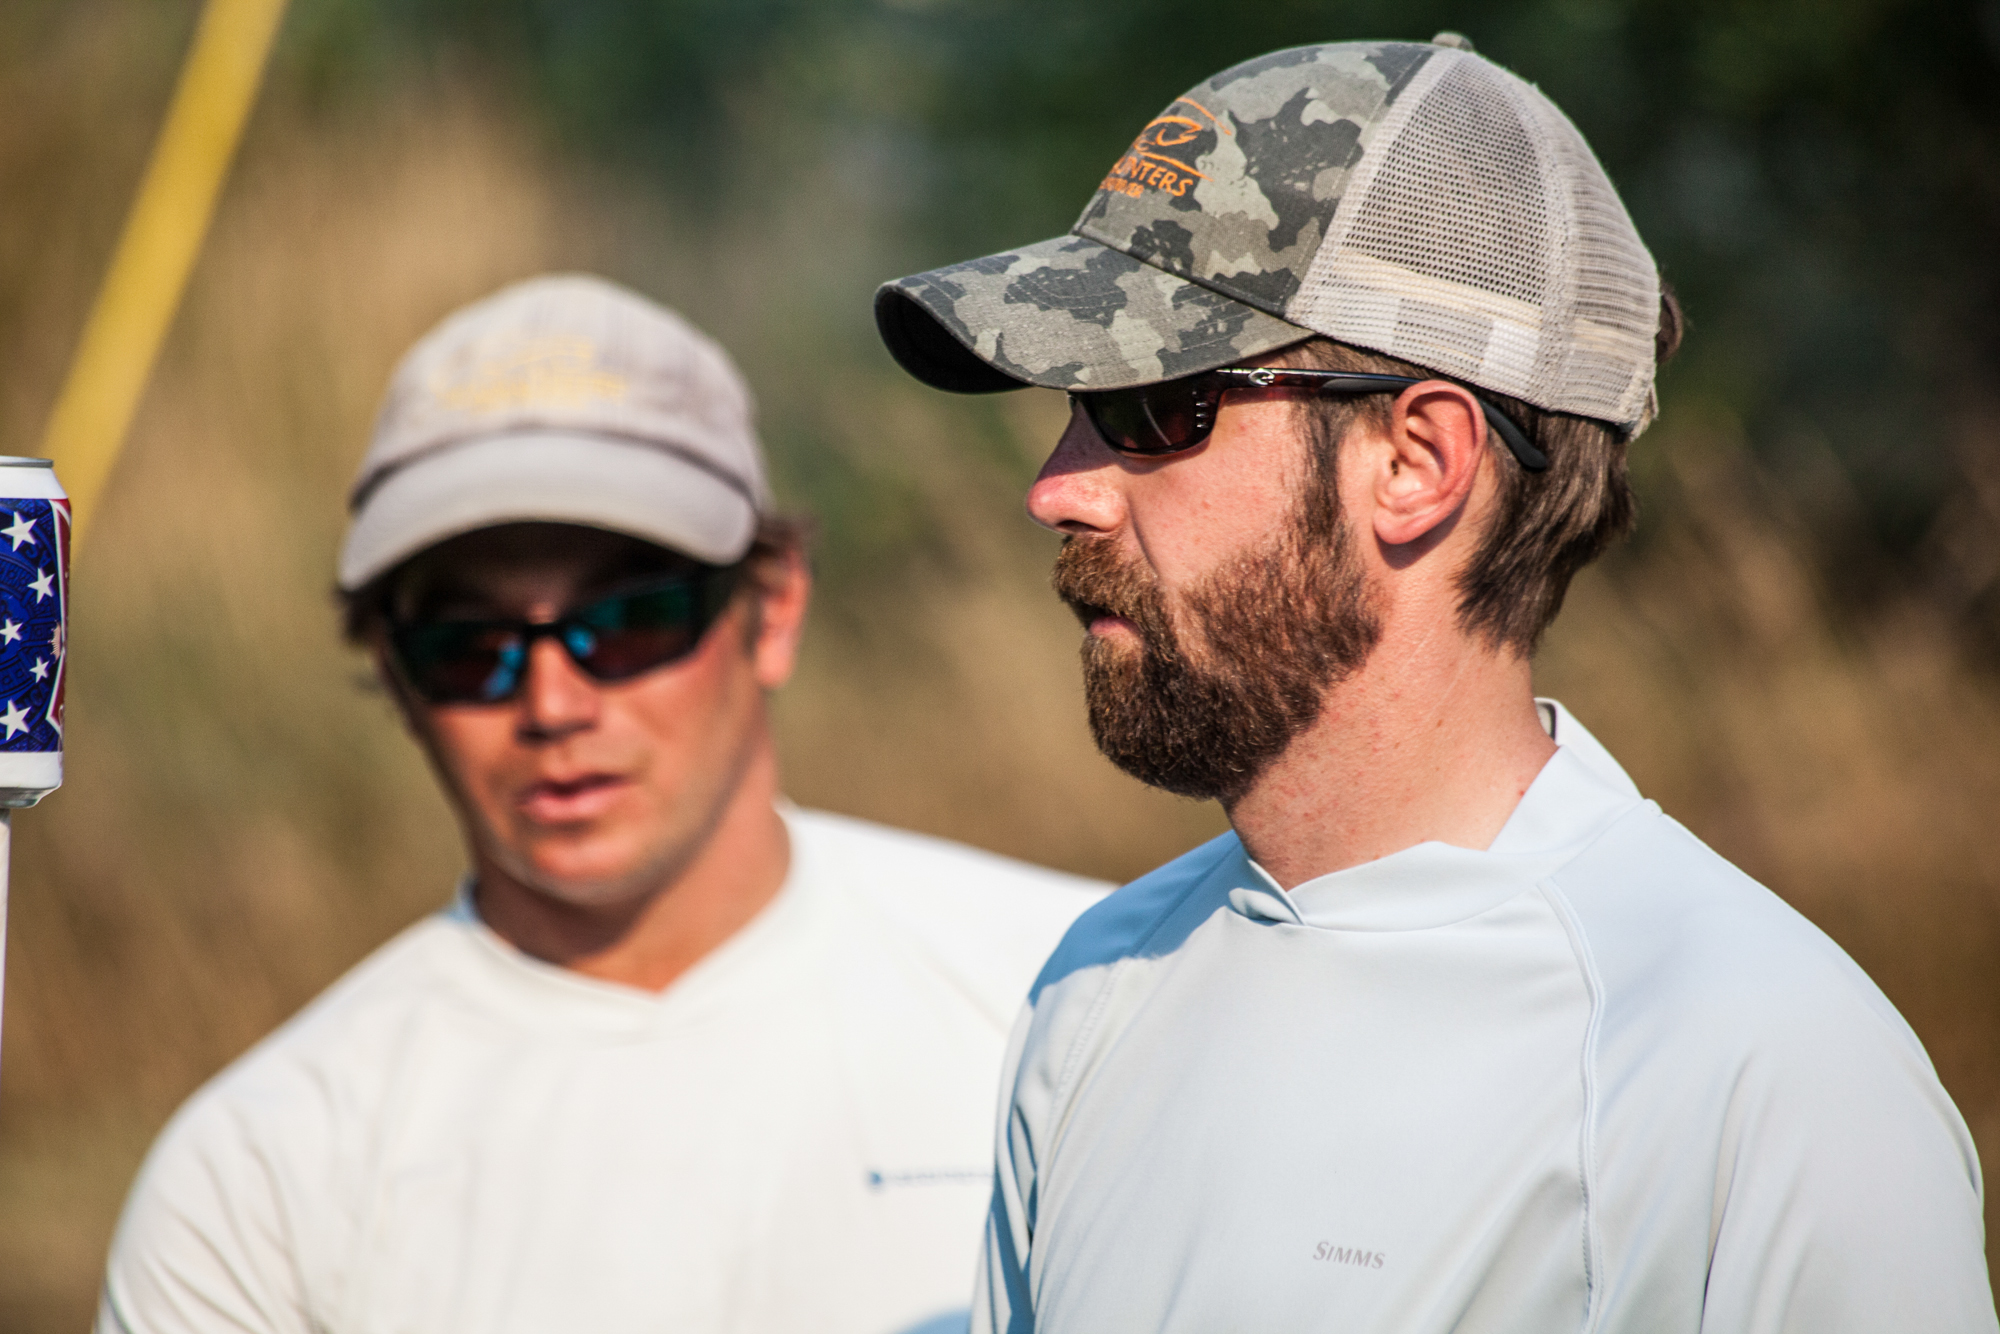 Headhunters fly guru Ben McNinch (right) and guide Nick Stippich work the team angle during a cutthroat game of Polish Horseshoes after the Caddy Day float. On or off the river, fishing style rules.